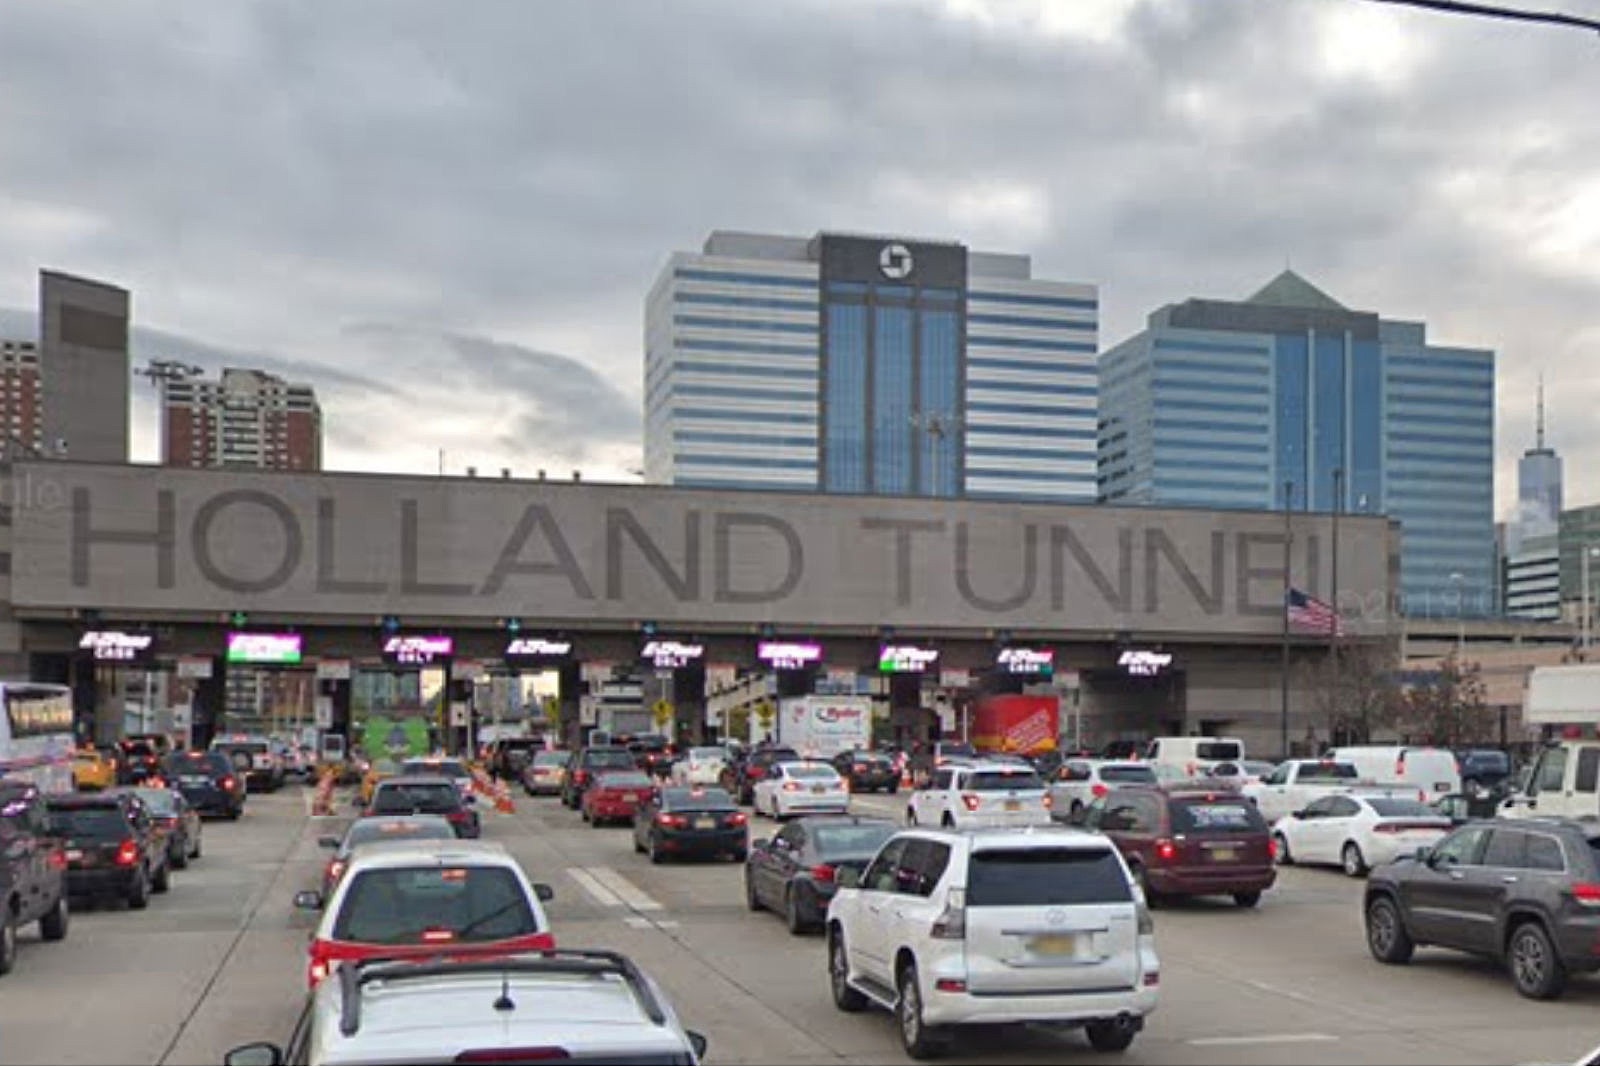 Holland Tunnel toll plaza (Google Maps)